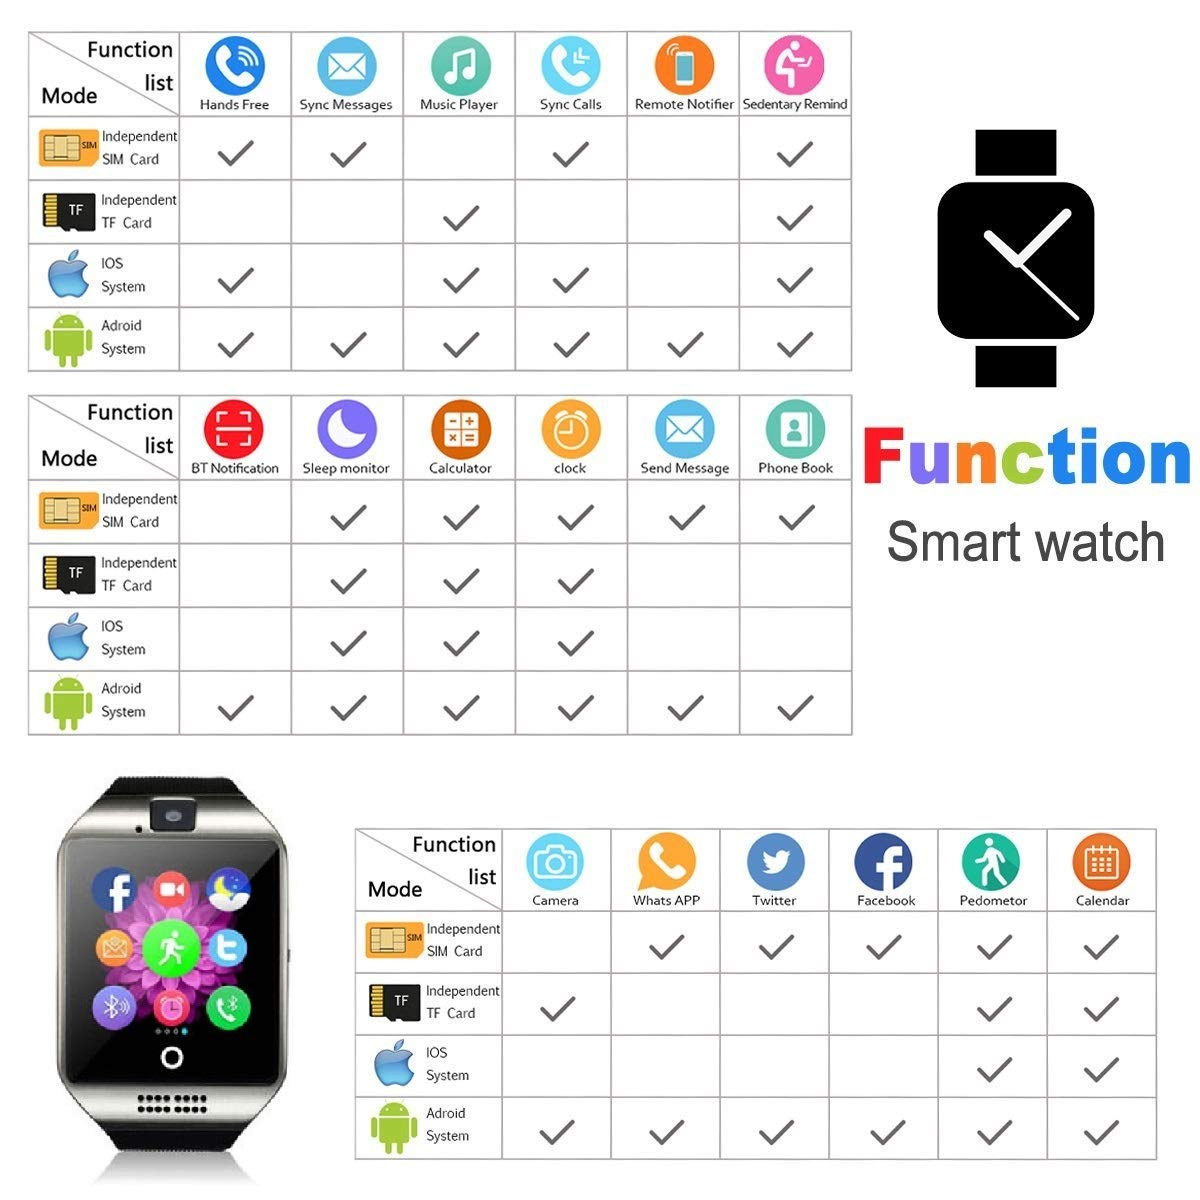 CNPGD [U.S. Office & Warranty Smart Watch] All-in-1 Weather Proof Smartwatch Watch Cell Phone for Android, Samsung, Galaxy Note, Nexus, HTC, Sony (Black, M) by CNPGD (Image #3)